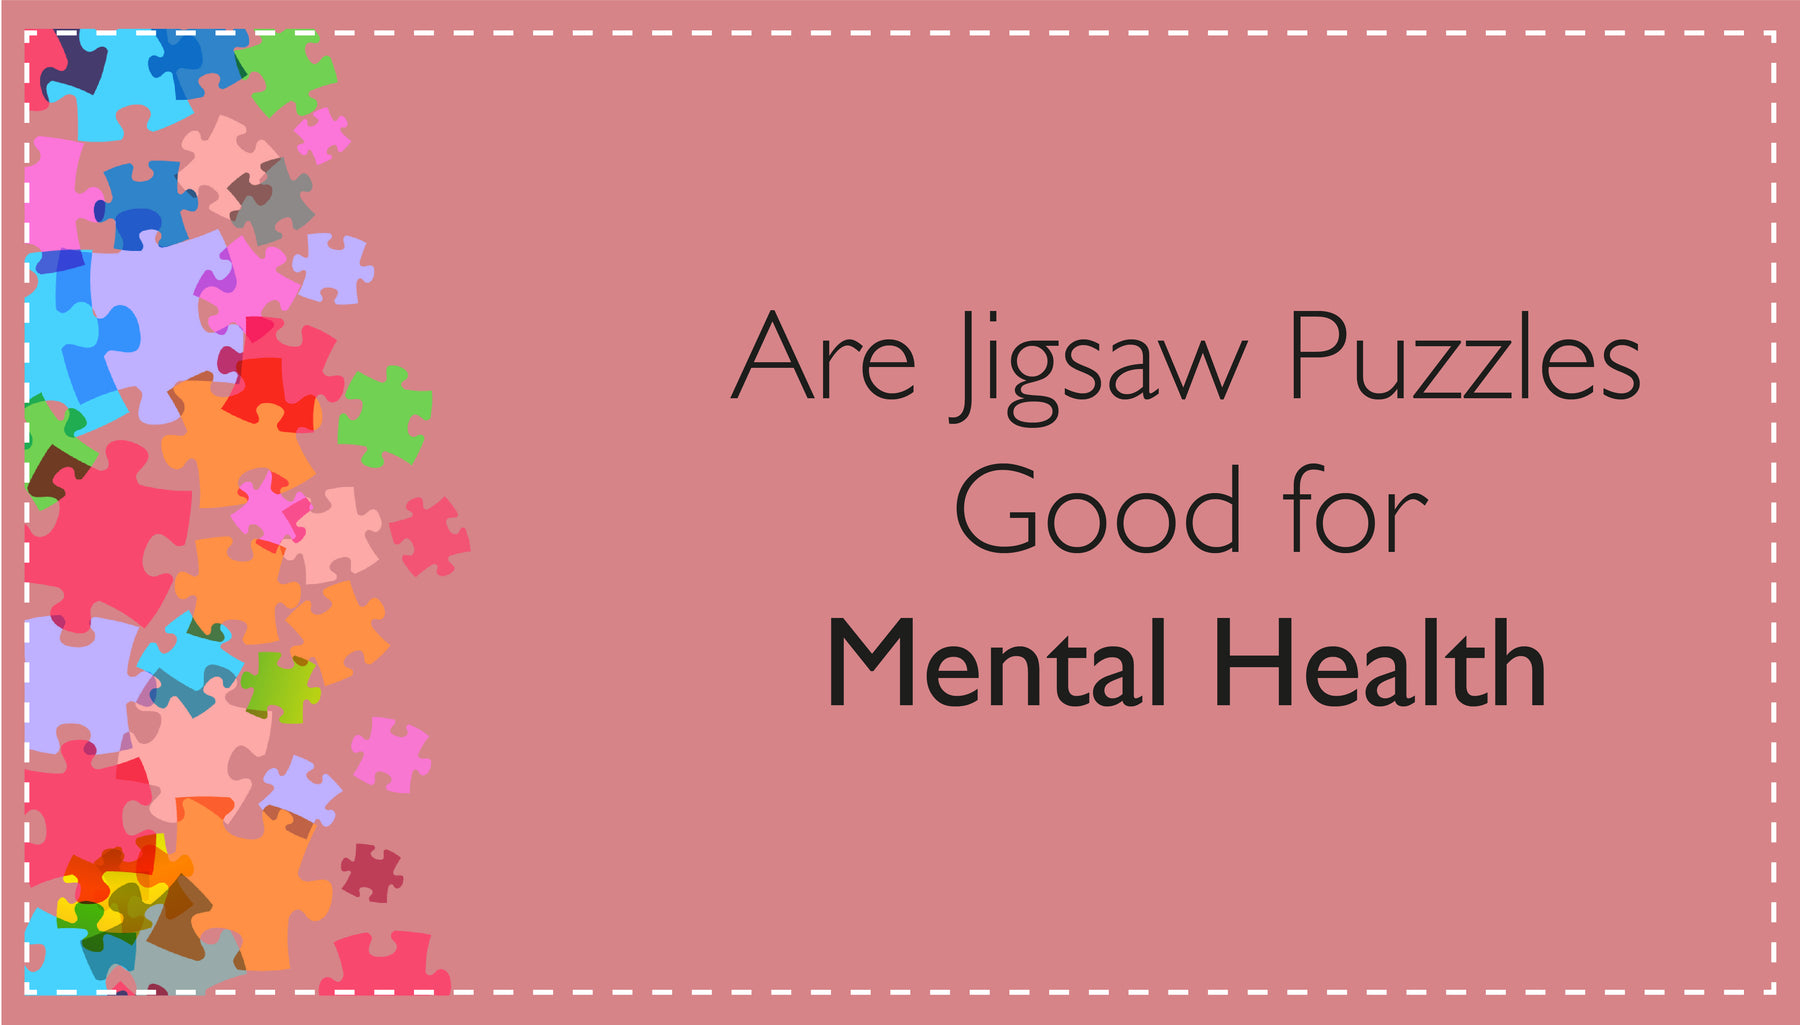 Are Jigsaw Puzzles Good for Mental Health?